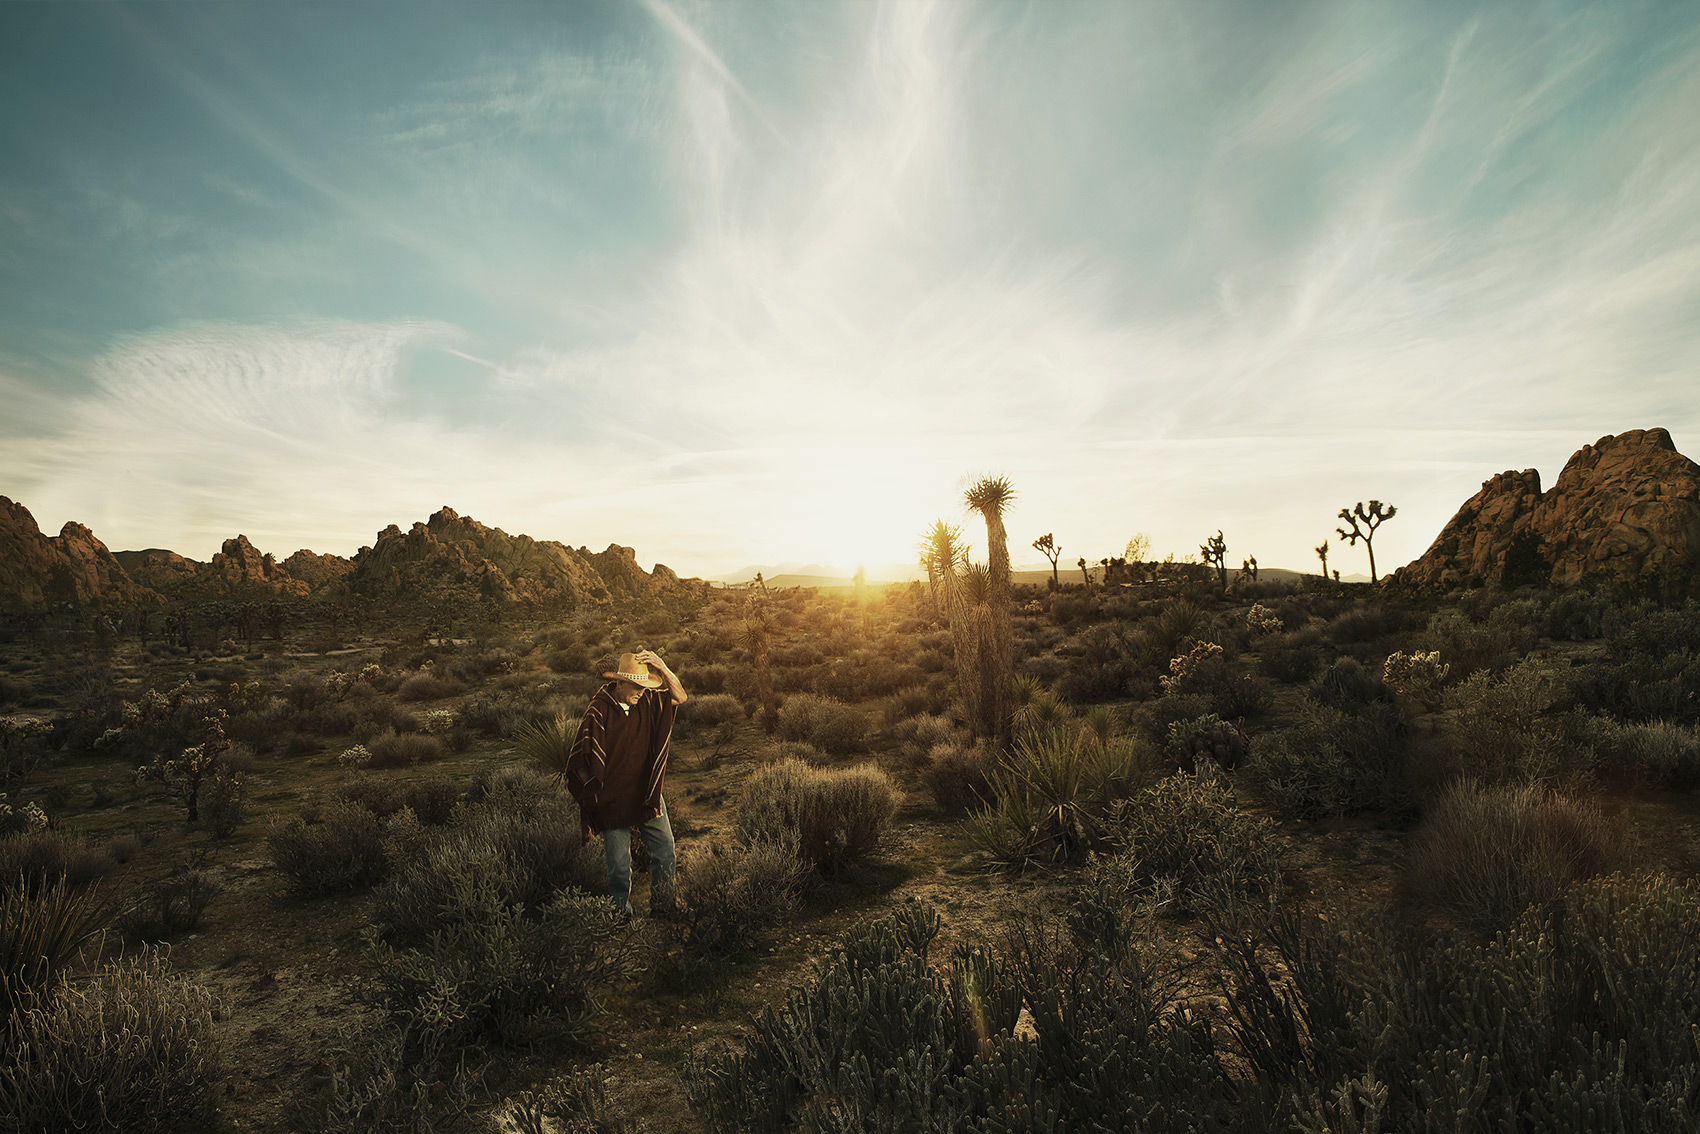 Justin James Muir - Joshua Tree 2